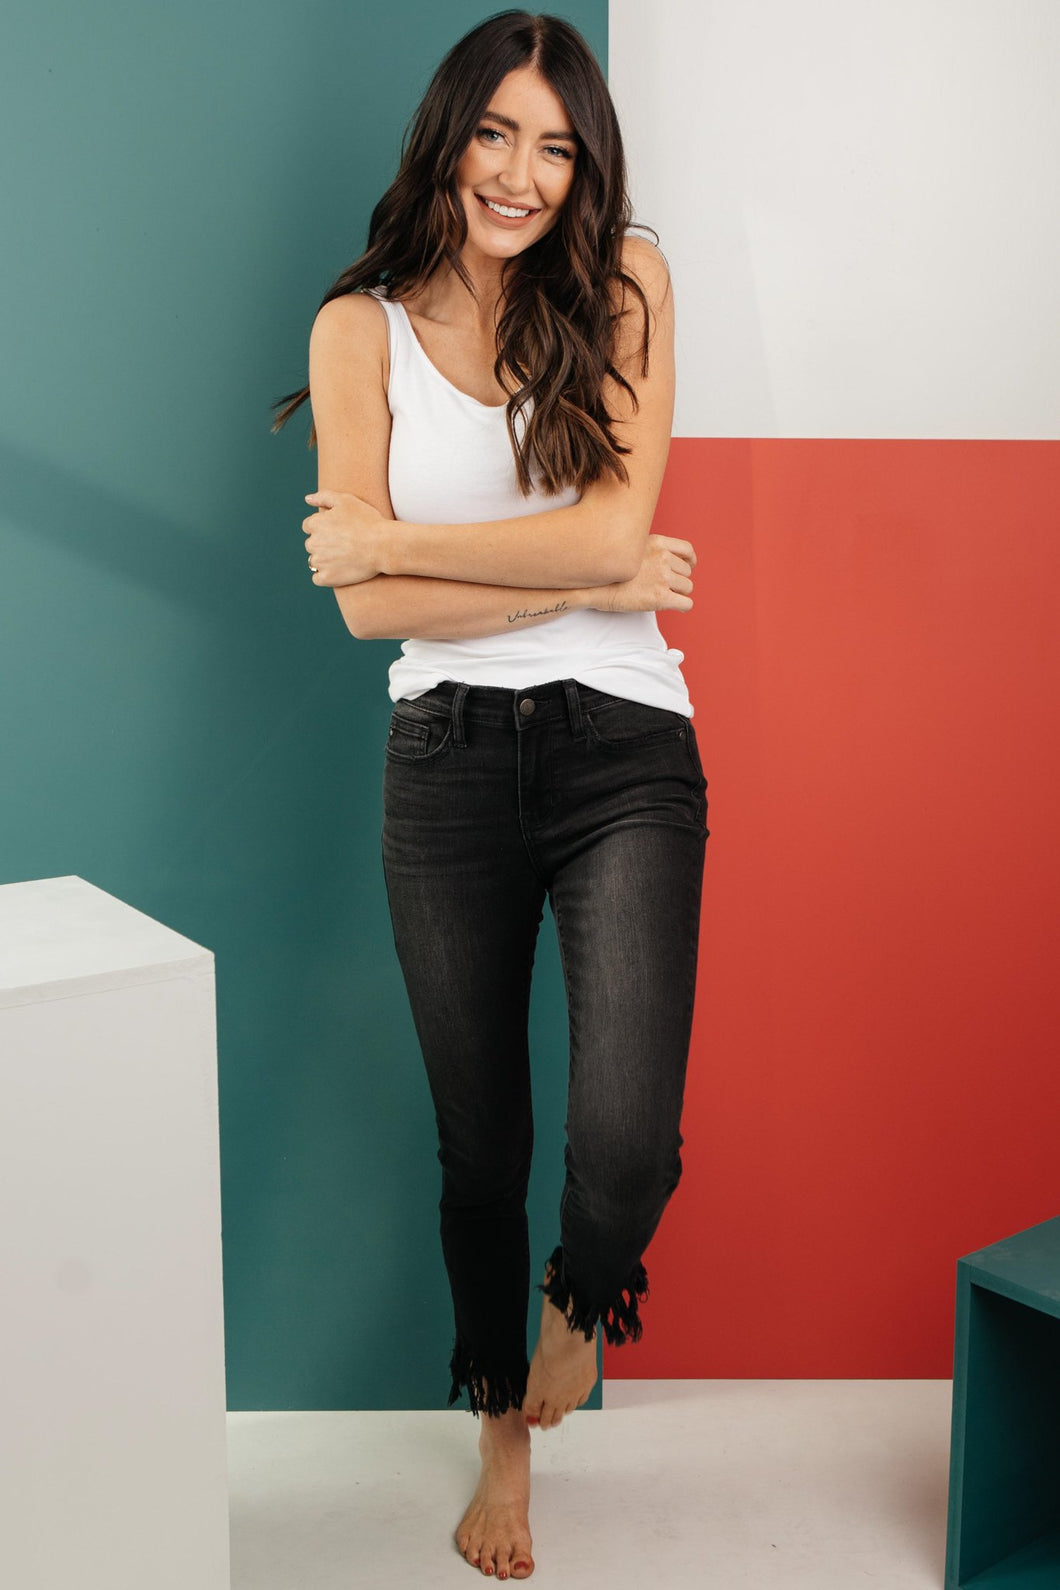 A Shred Of Confidence Black Jeans - Smith & Vena Online Boutique